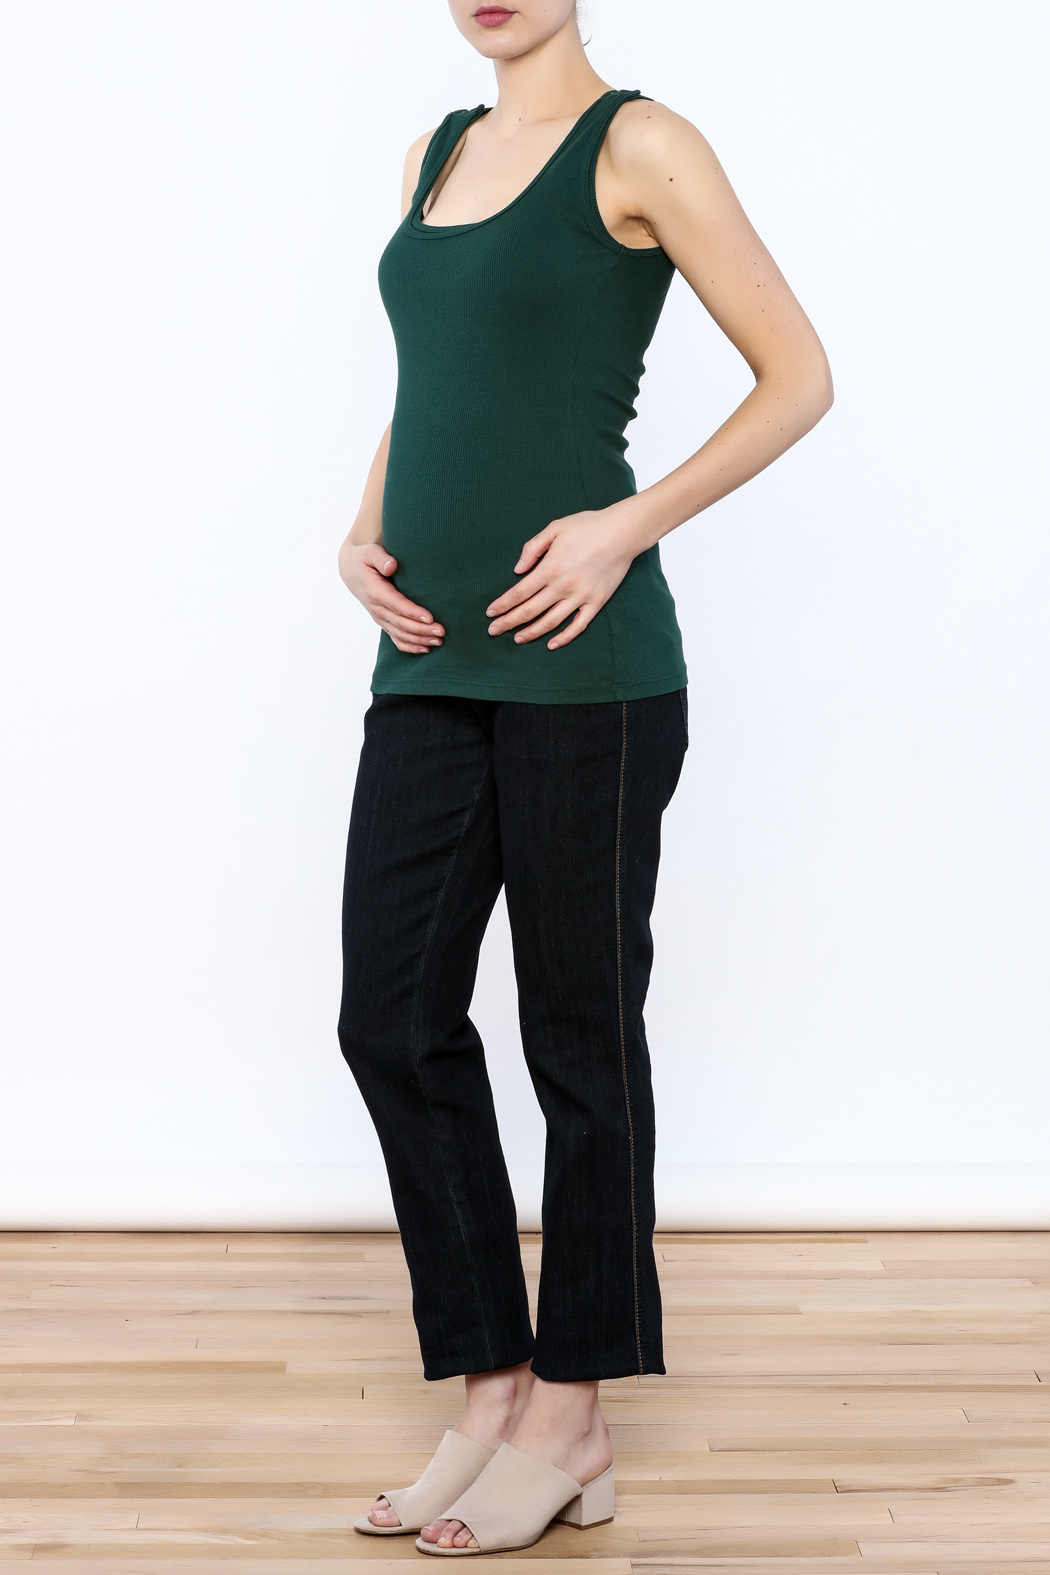 Bun Forest Green Tank Top - Front Full Image